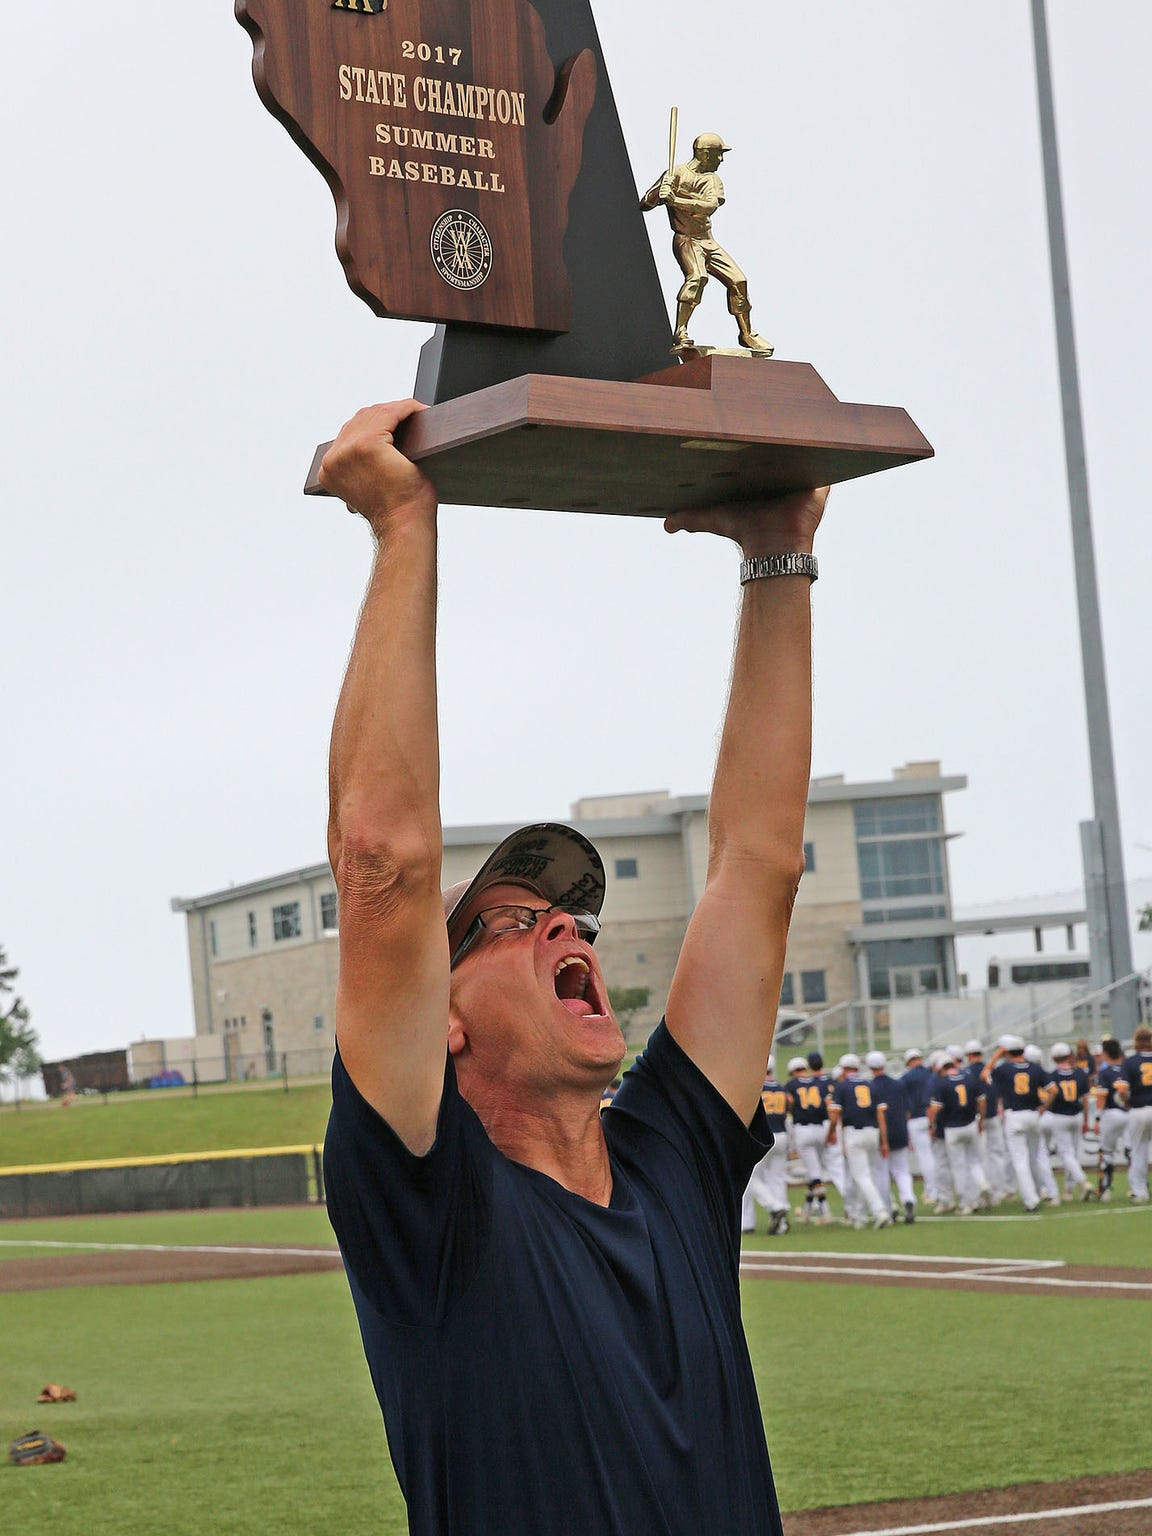 West Bend West head coach Bill Albrecht lost in the 2013 title game, but came back to state four years later and won the title with an undefeated Spartans team.